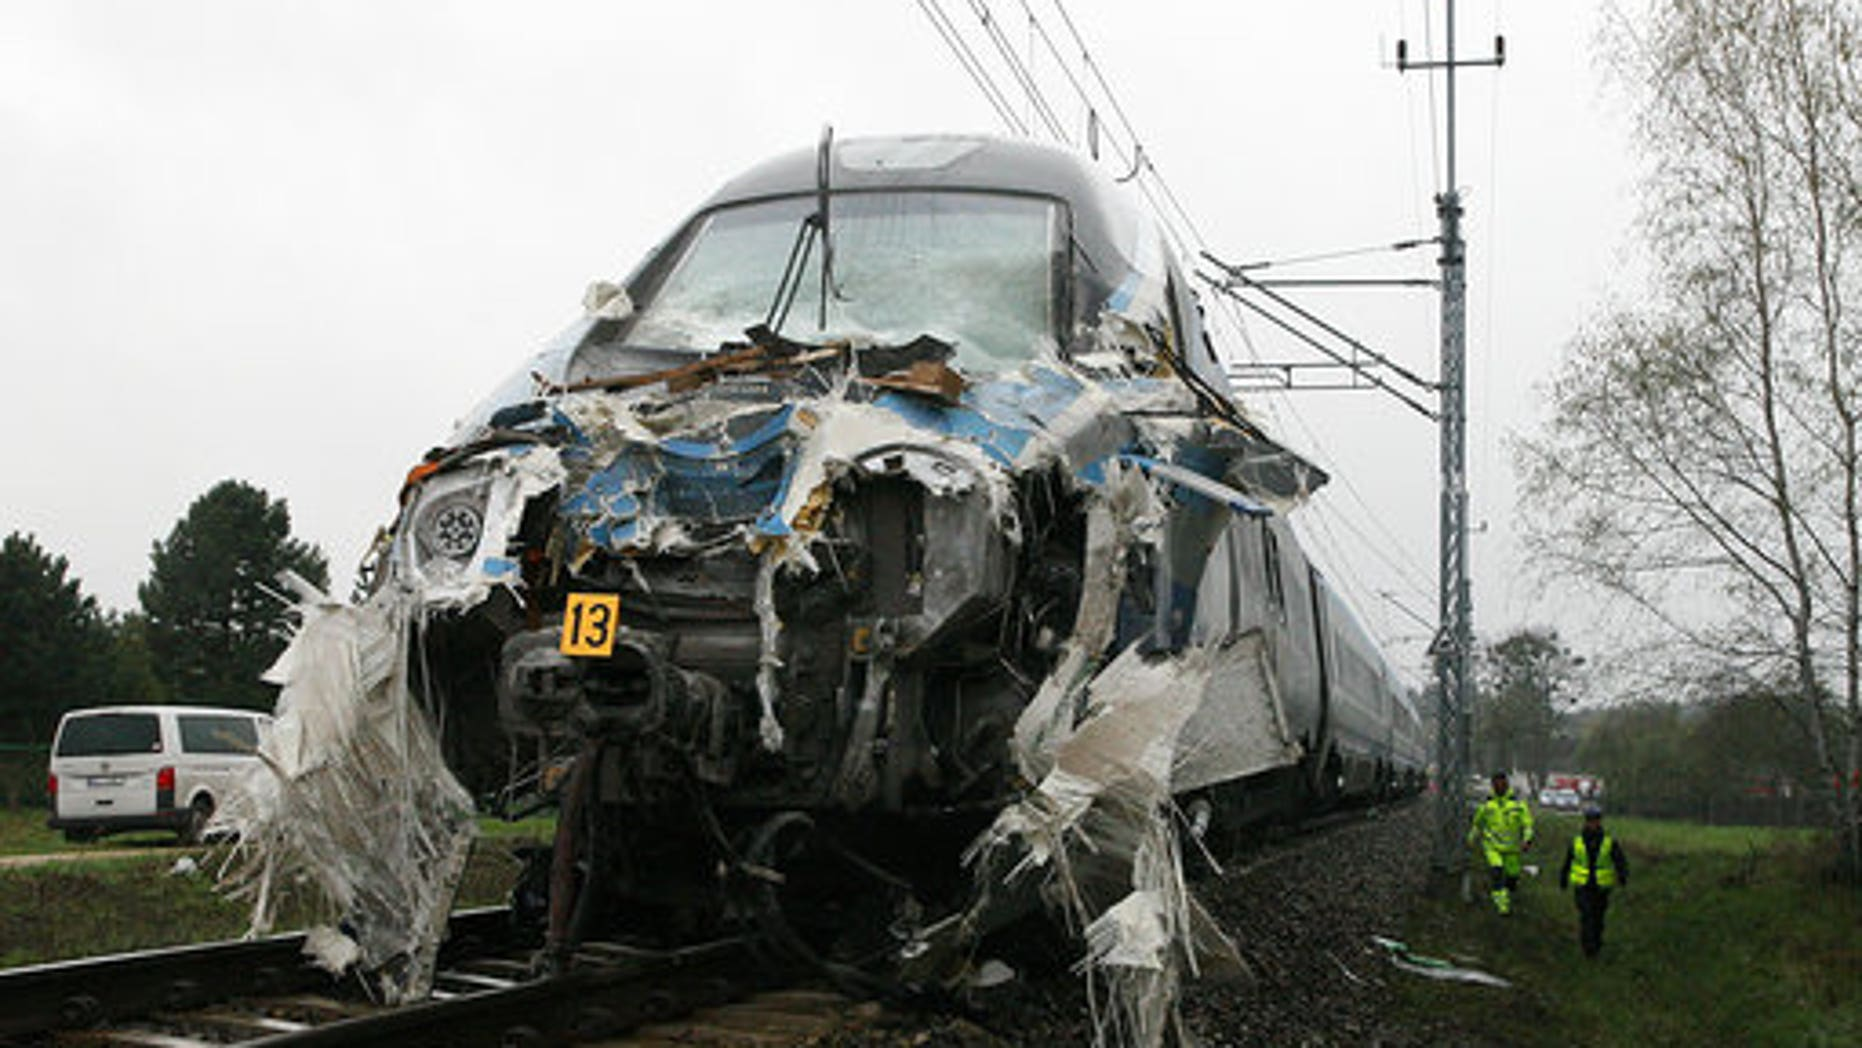 Damage to the train after the crash.